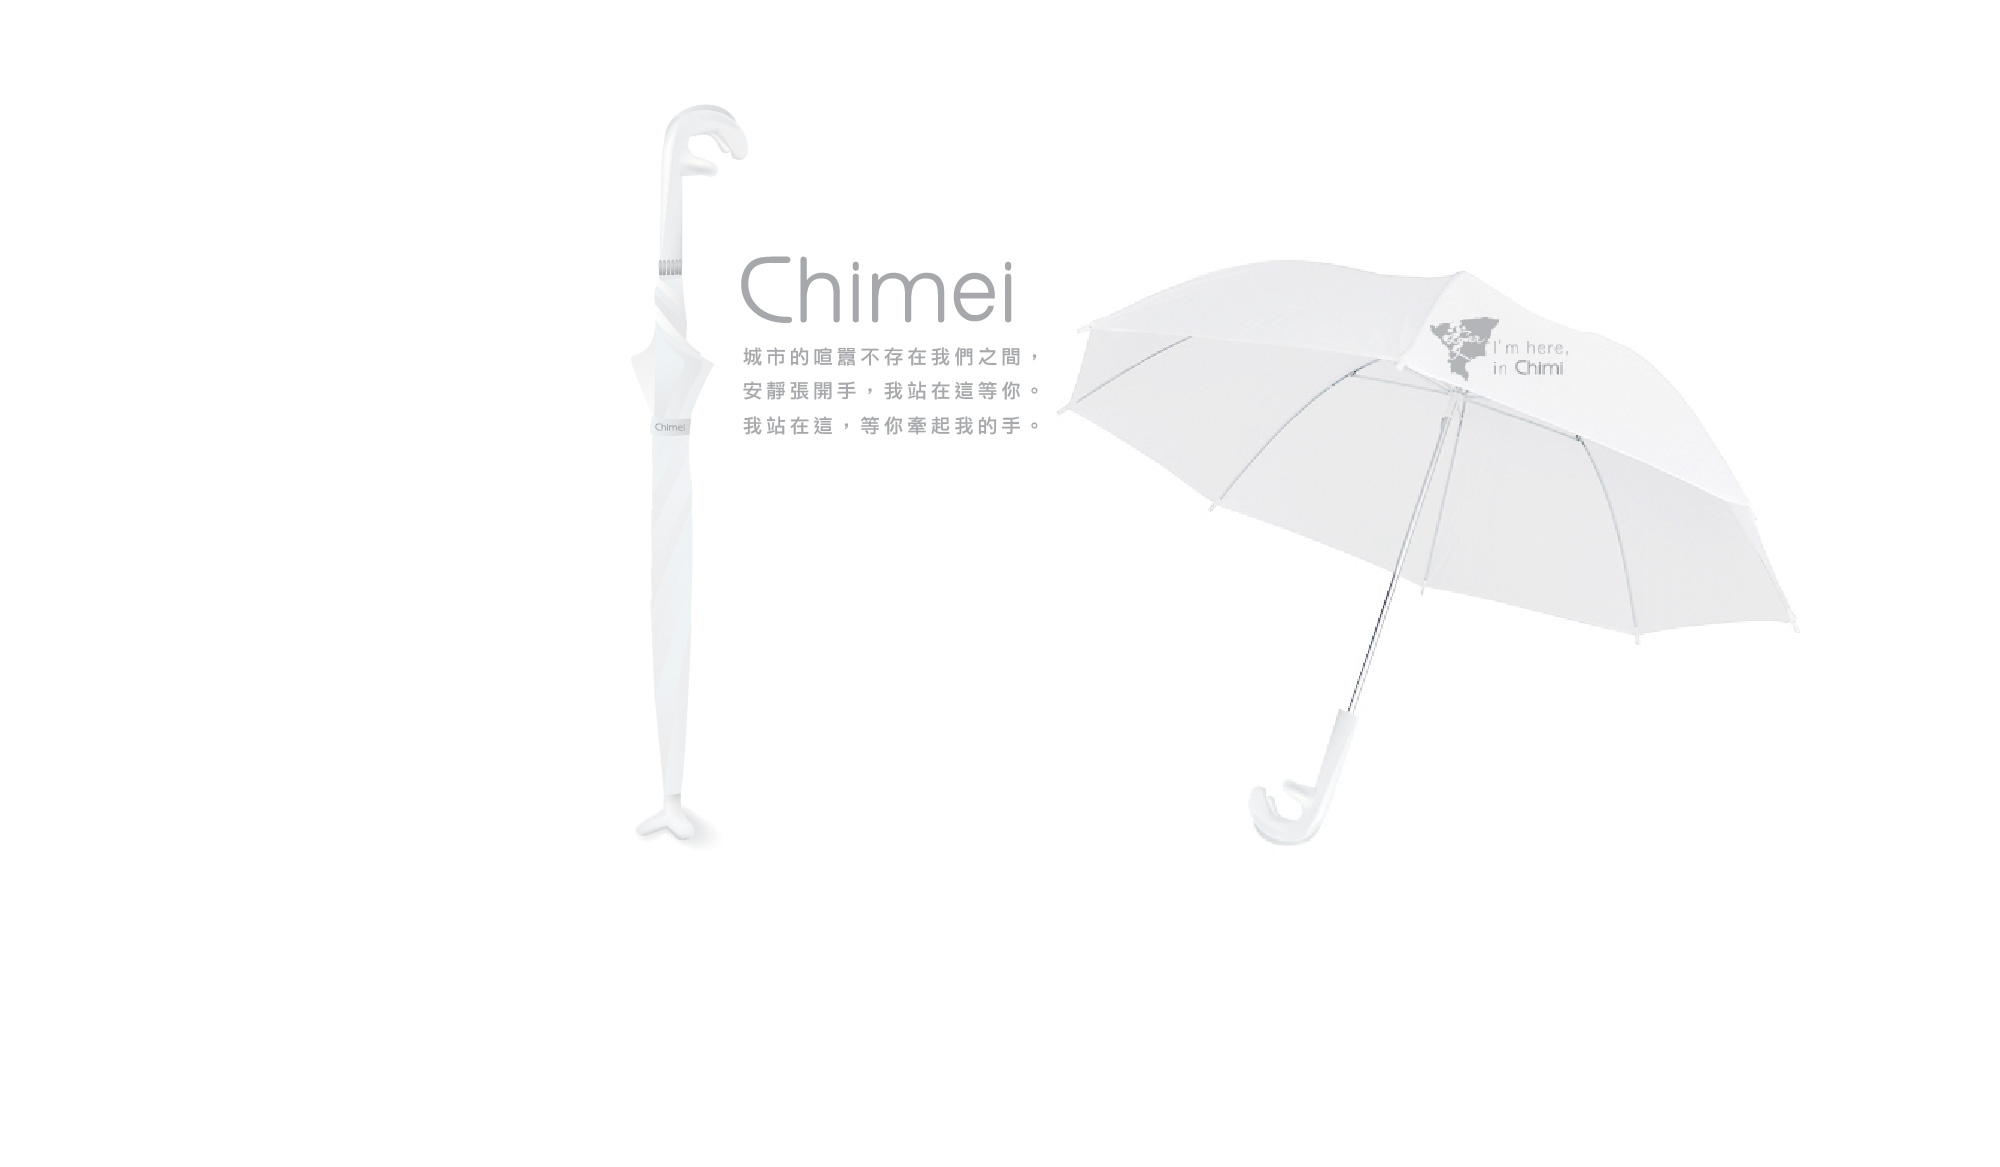 Chimei Product Design- A